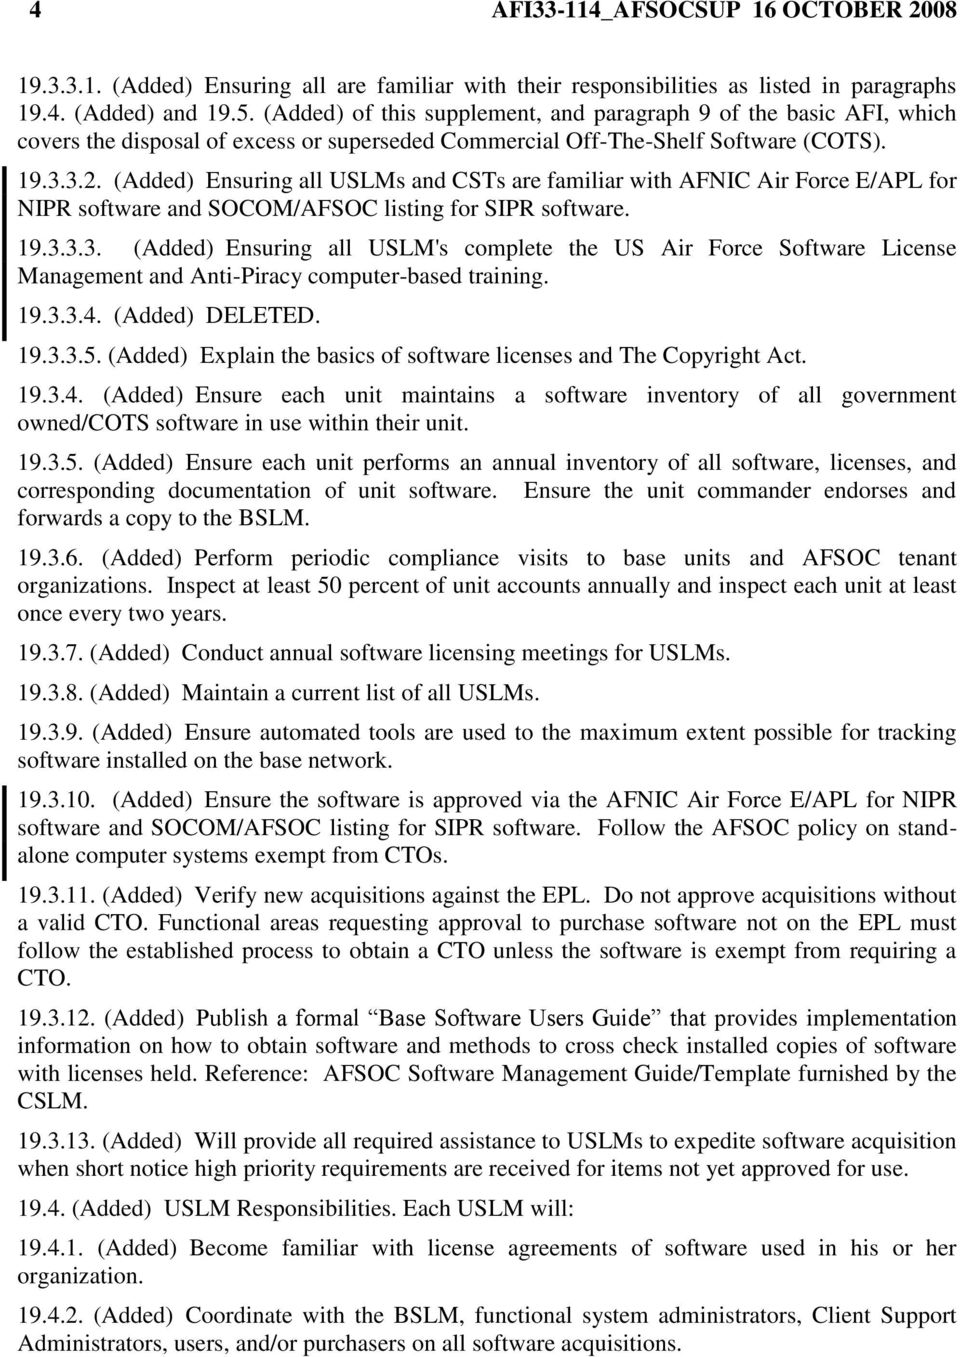 (Added) Ensuring all USLMs and CSTs are familiar with AFNIC Air Force E/APL for NIPR software and SOCOM/AFSOC listing for SIPR software. 19.3.